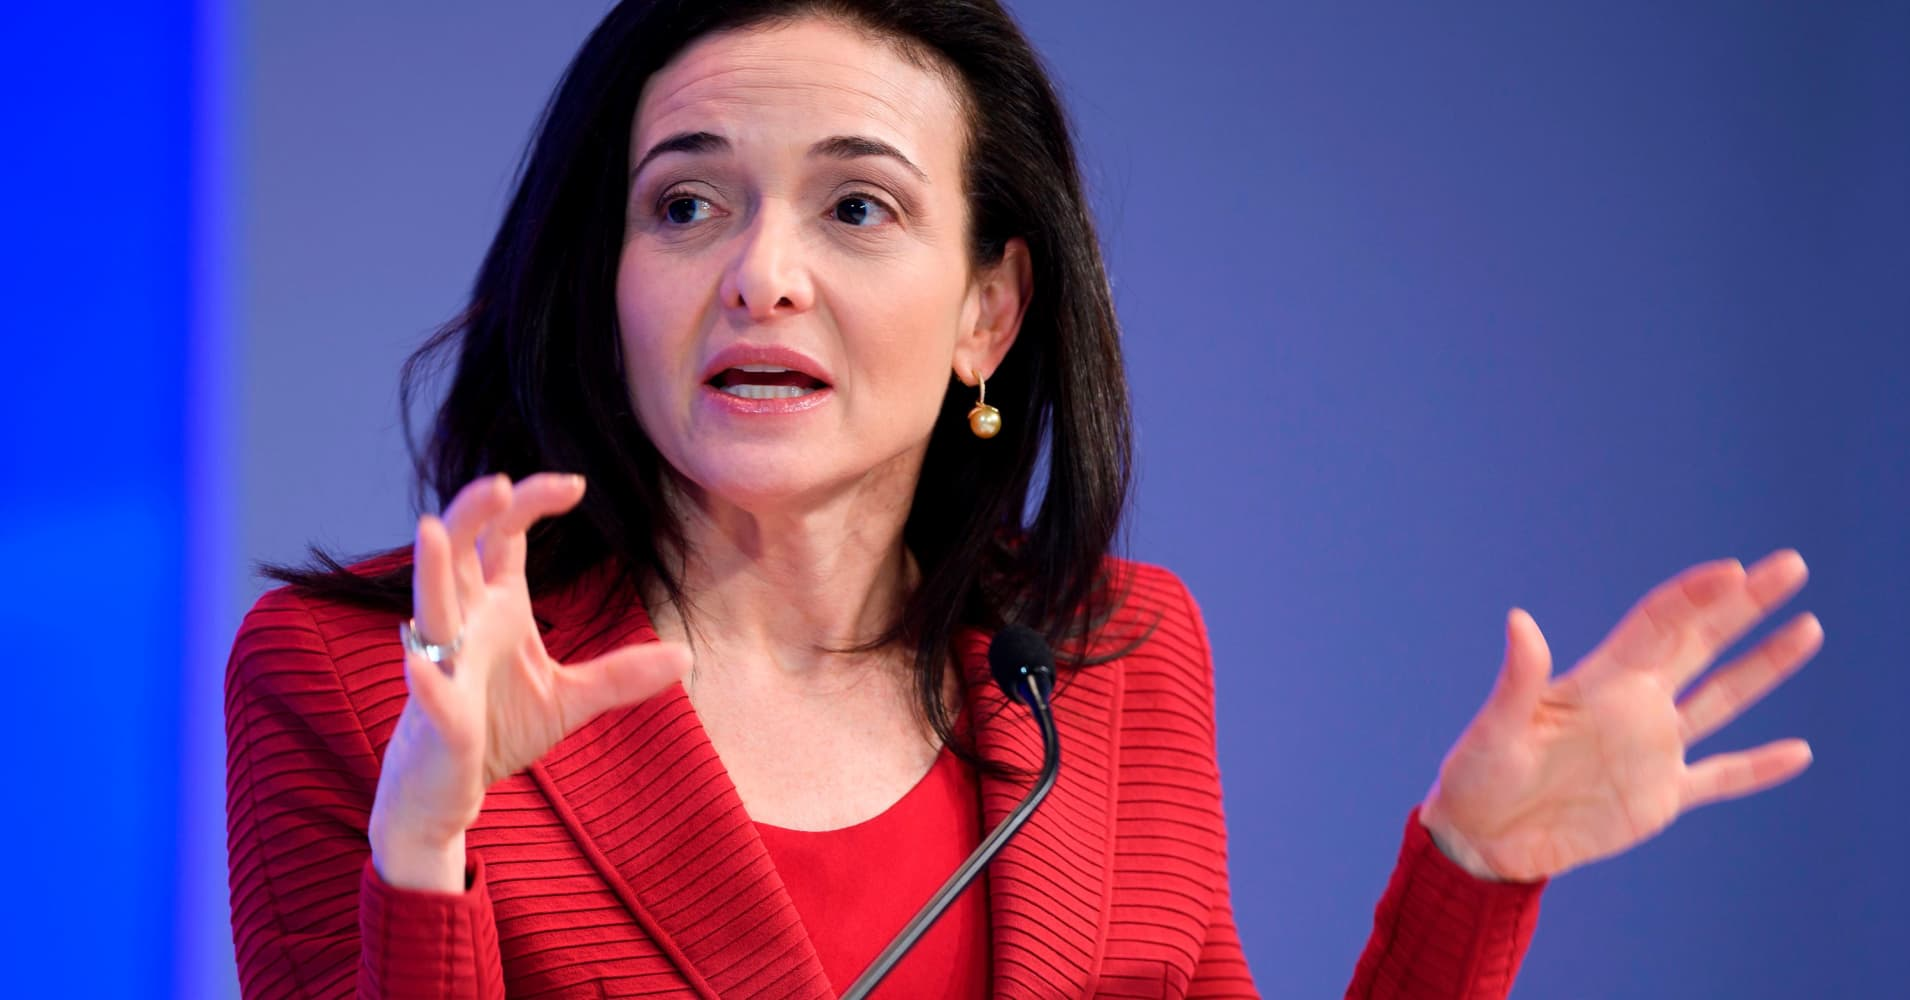 Management guru Sonnenfeld slams Facebook COO Sandberg, saying she 'probably should be replaced'